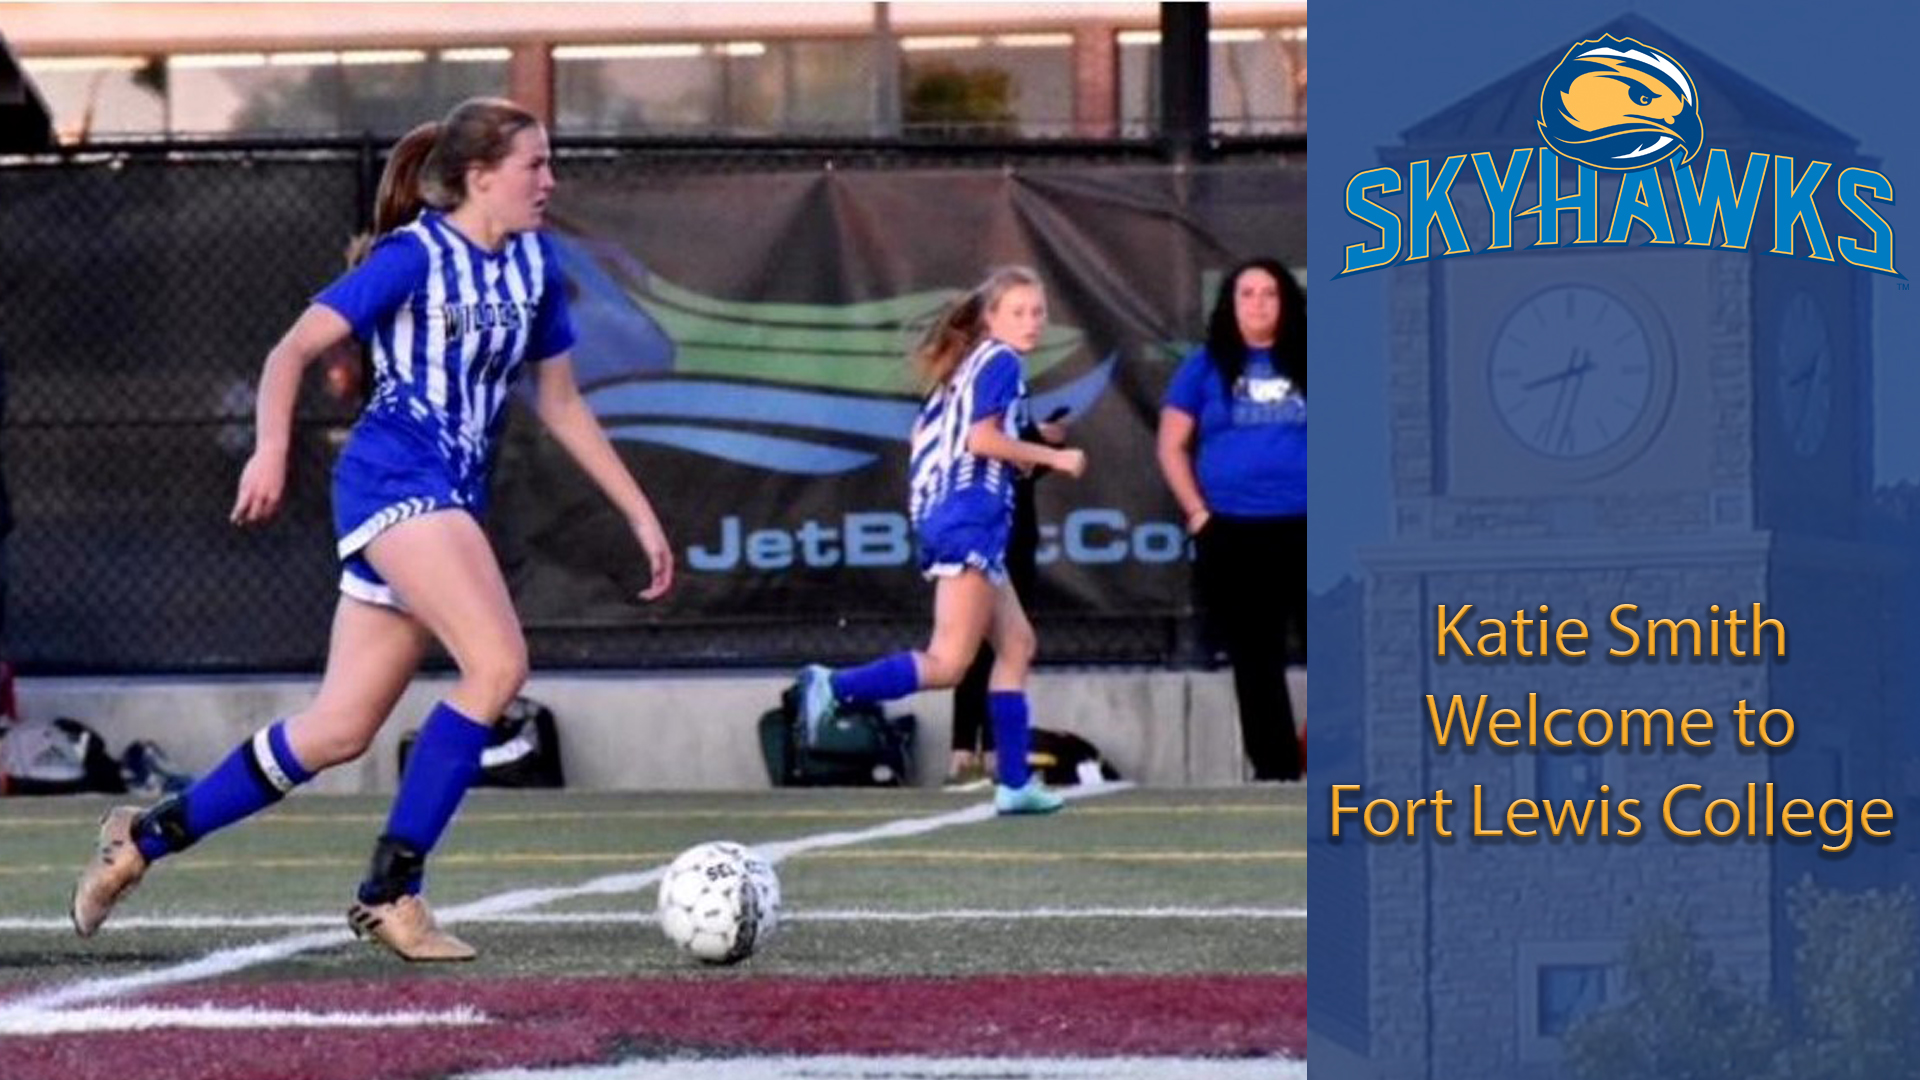 reputable site 212b4 8244c Colorado's Own Smith to Join Women's Soccer - Fort Lewis ...